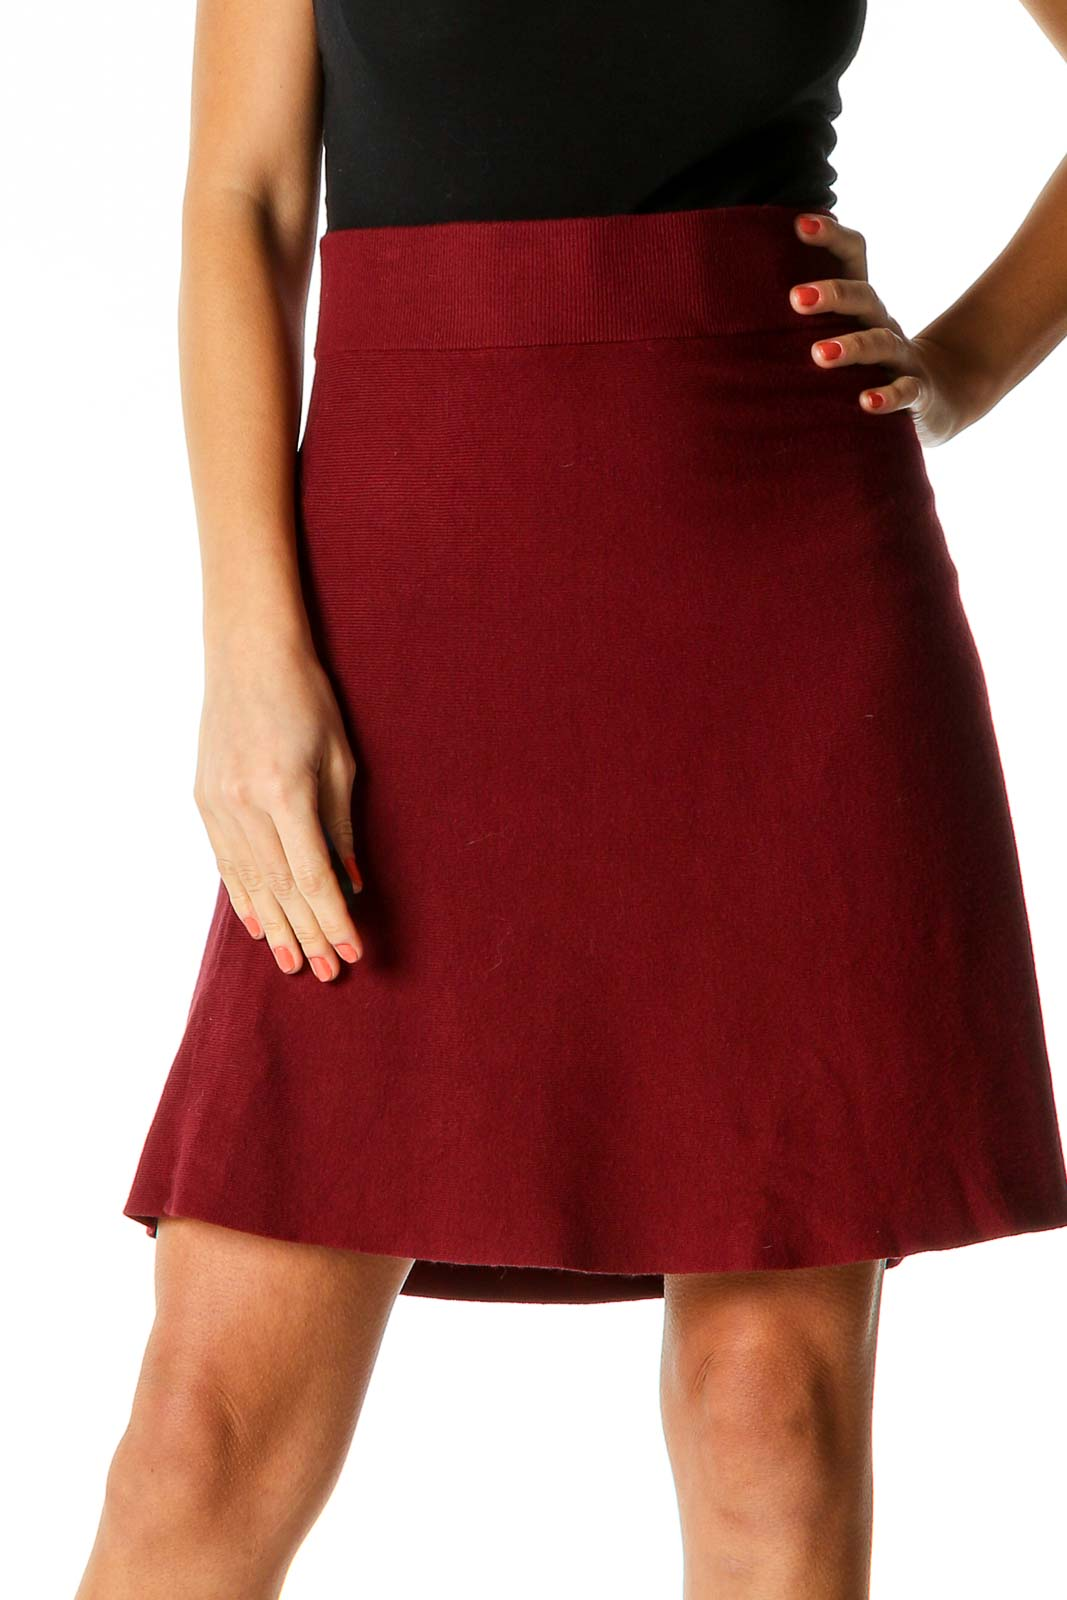 Red Textured Retro A-Line Skirt Front